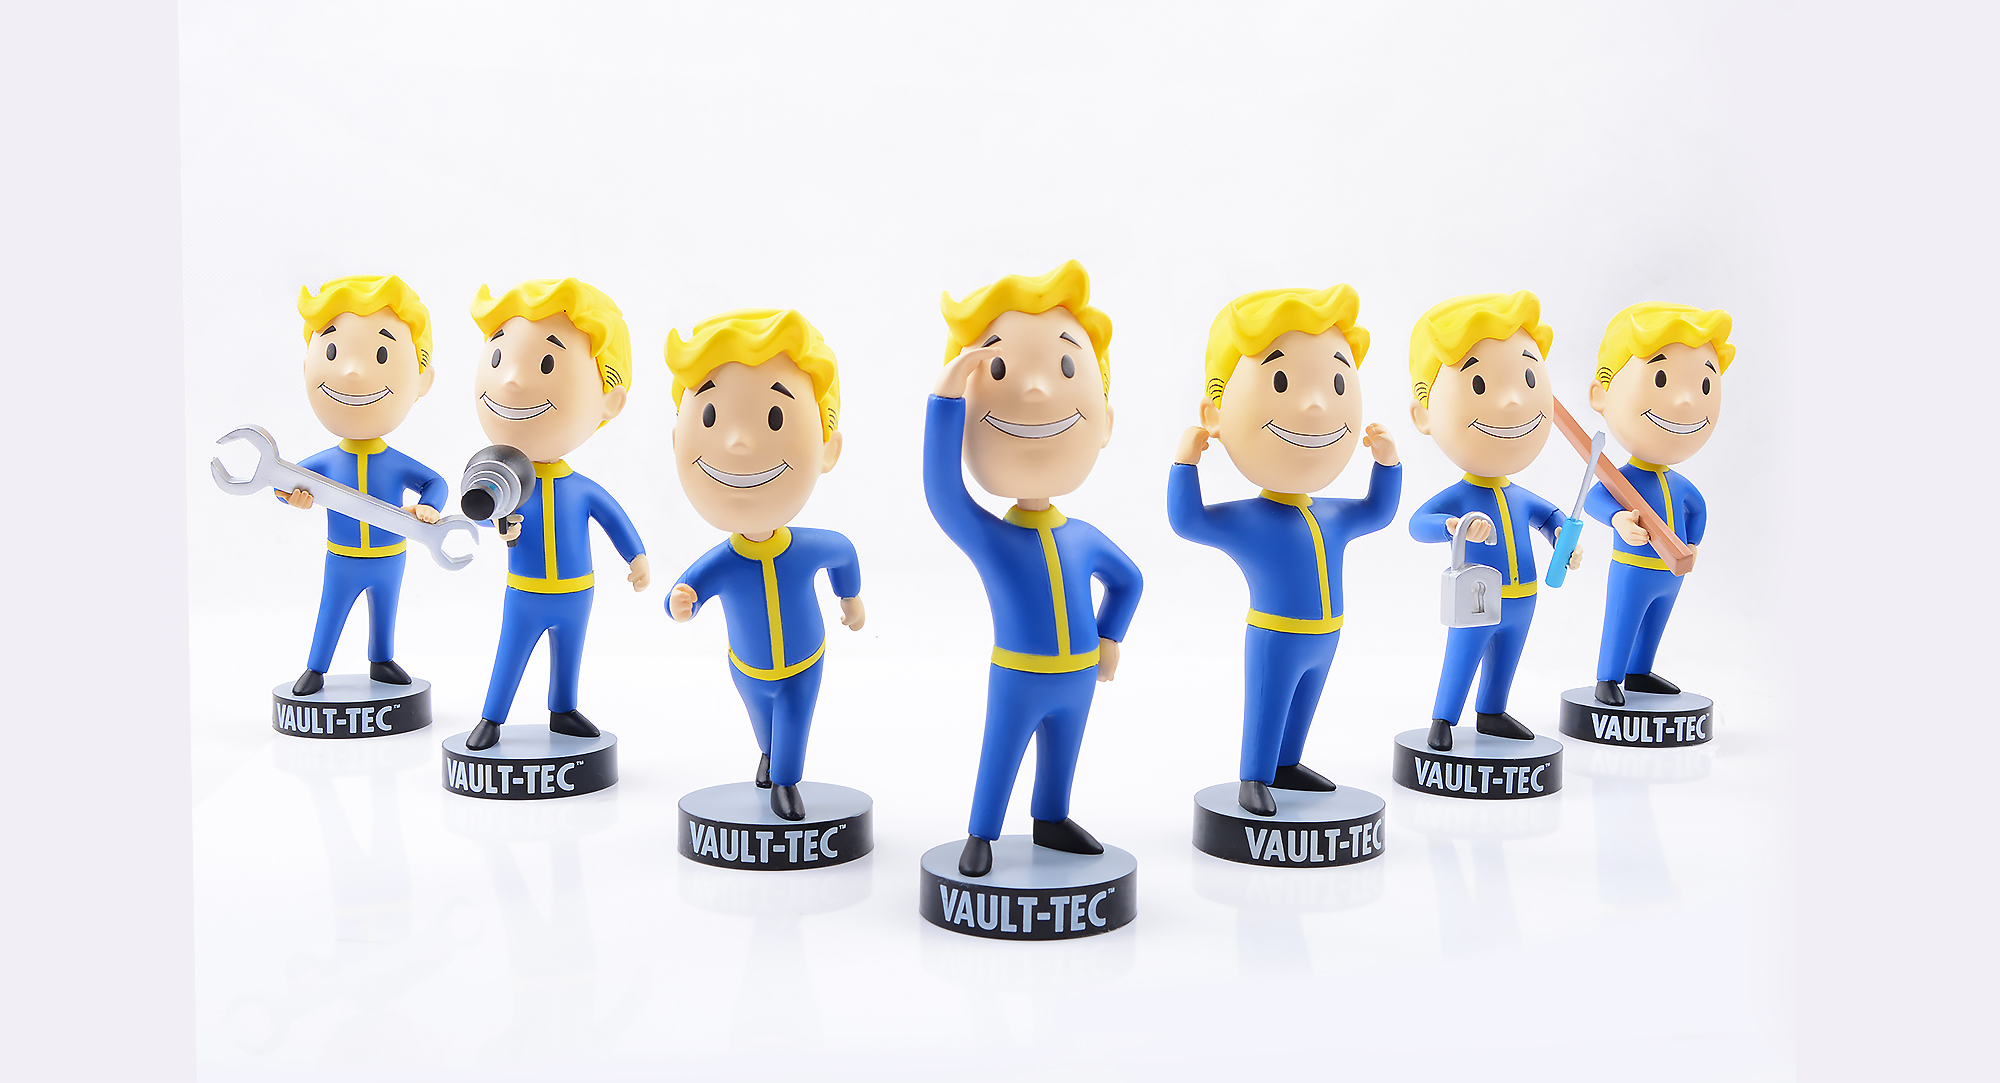 Fallout 4 Vault Boy Gaming Heads Fallout 4 toys Bobbleheads PVC Action Figure toy For Kid birthday gift DOLL brinqudoes